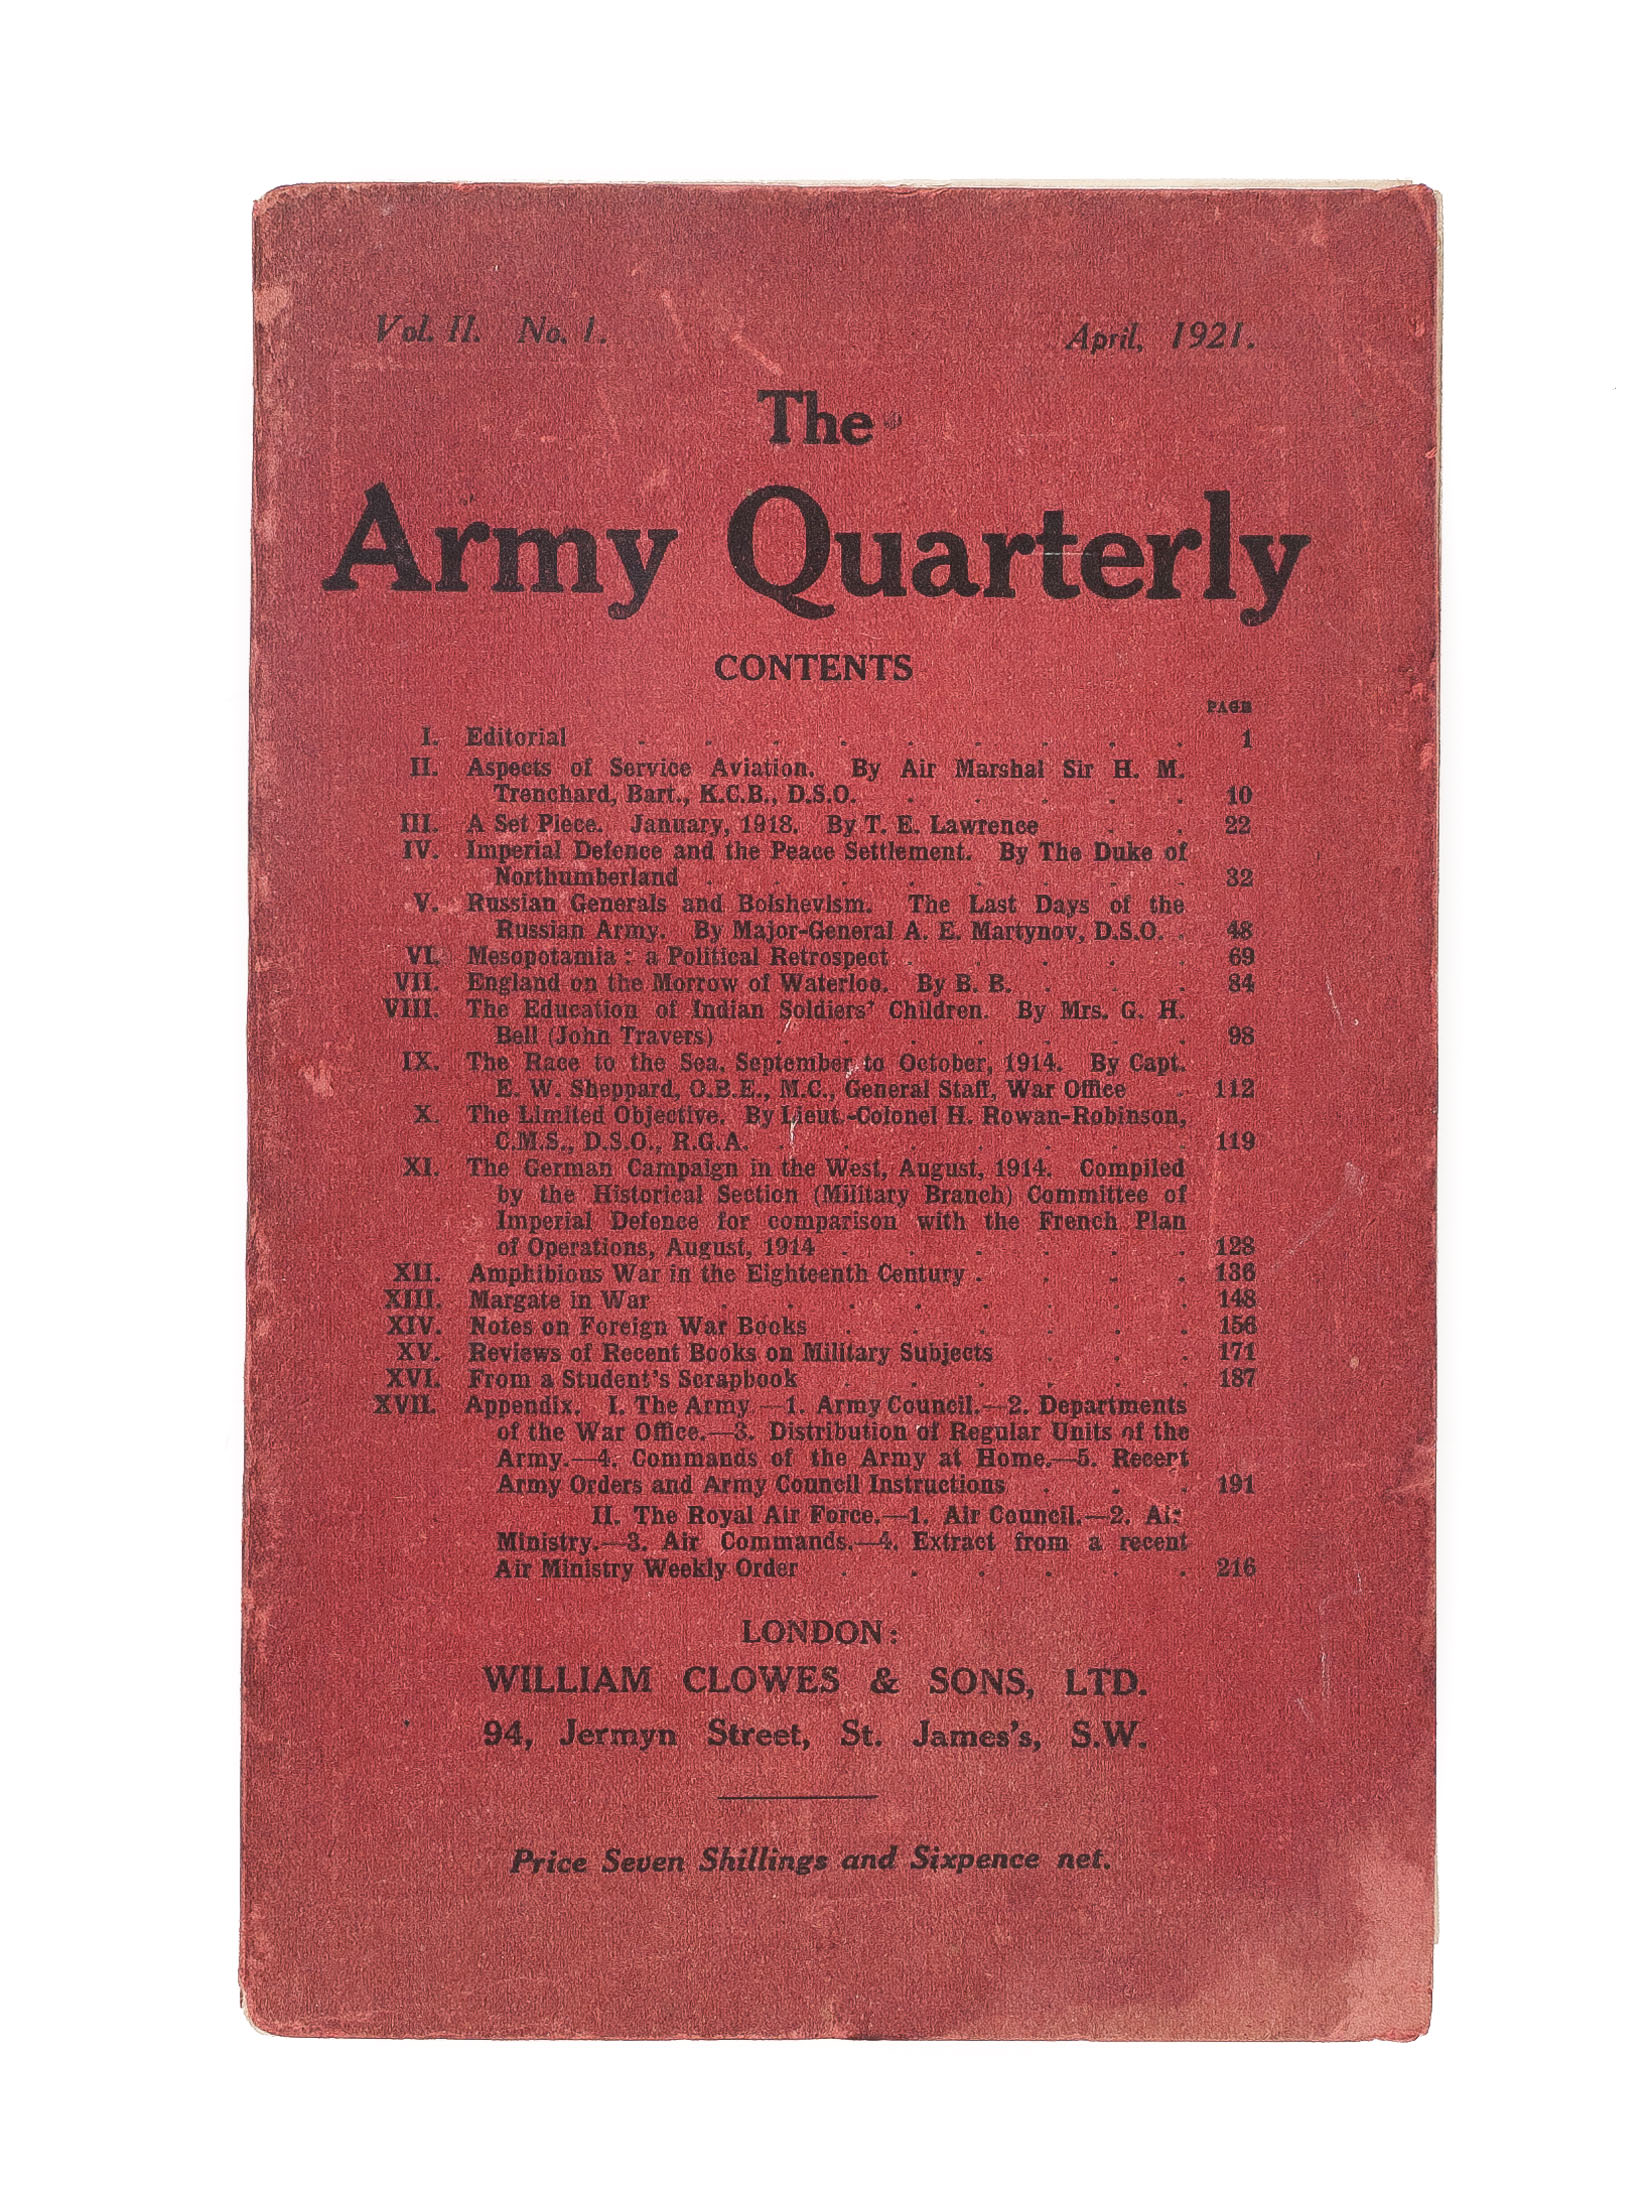 The Army Quarterly Vol Ii No 1 Lawrence Te First Edition